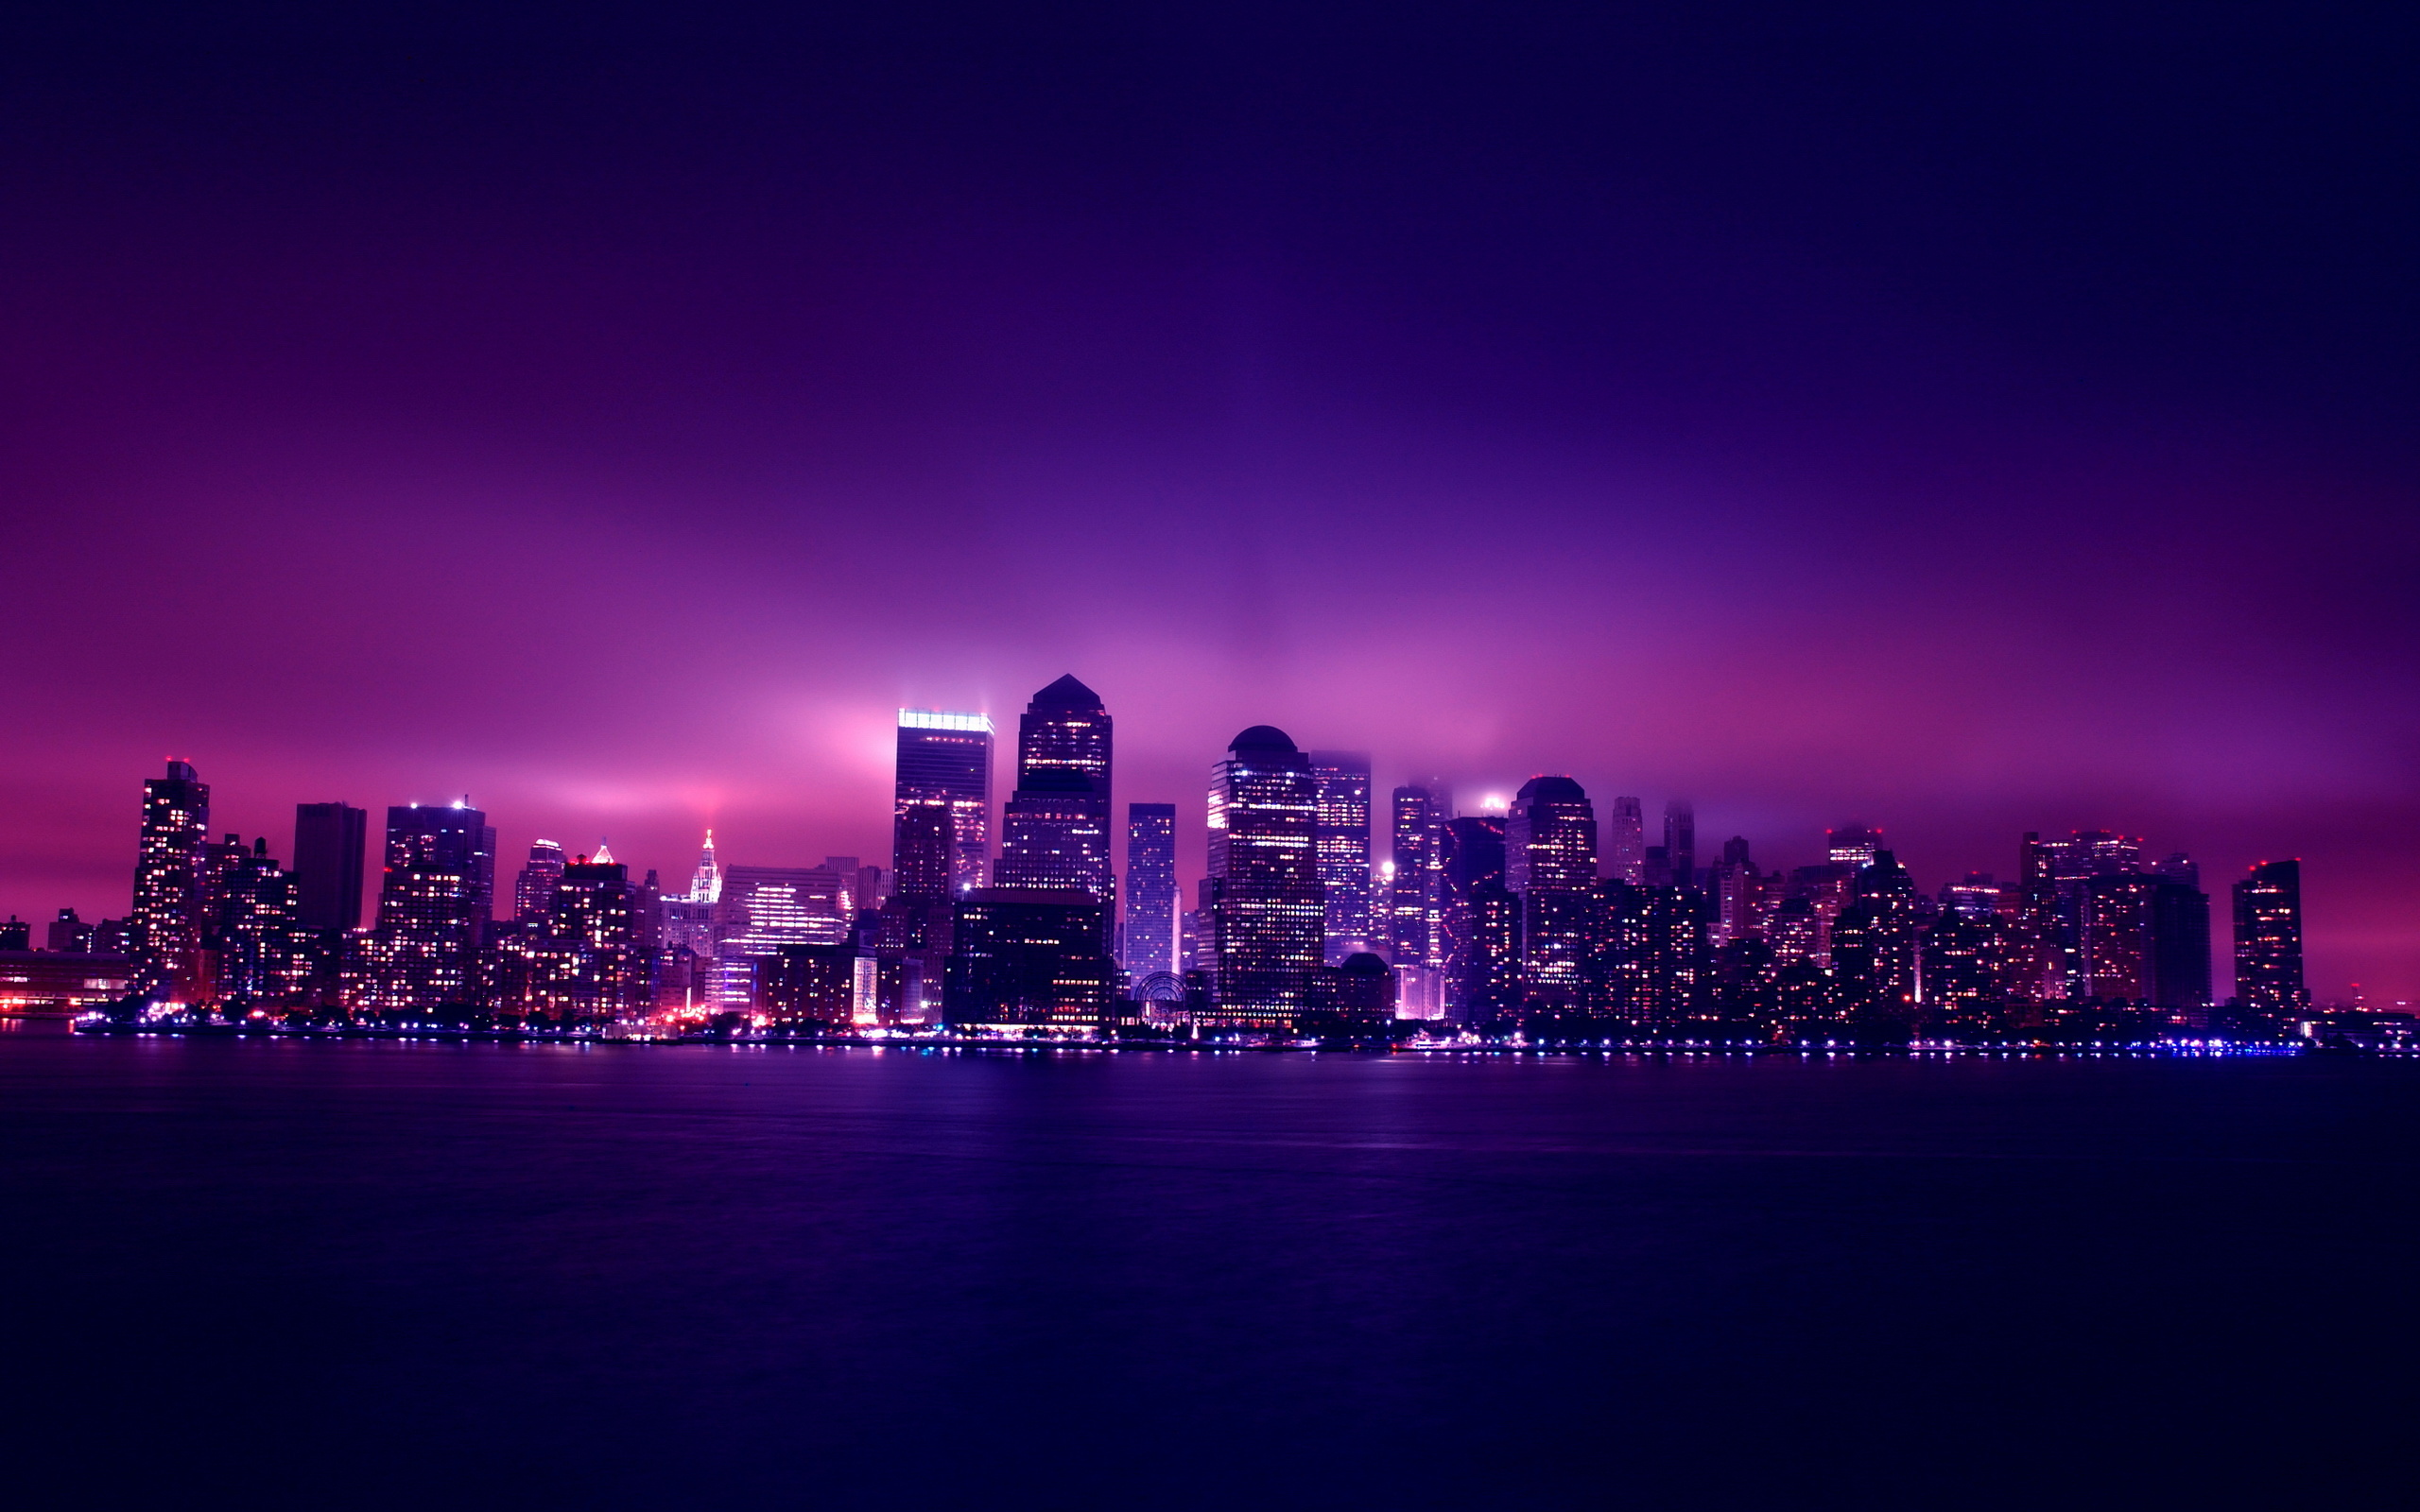 New york at night background desktop wallpapers and 2560x1600